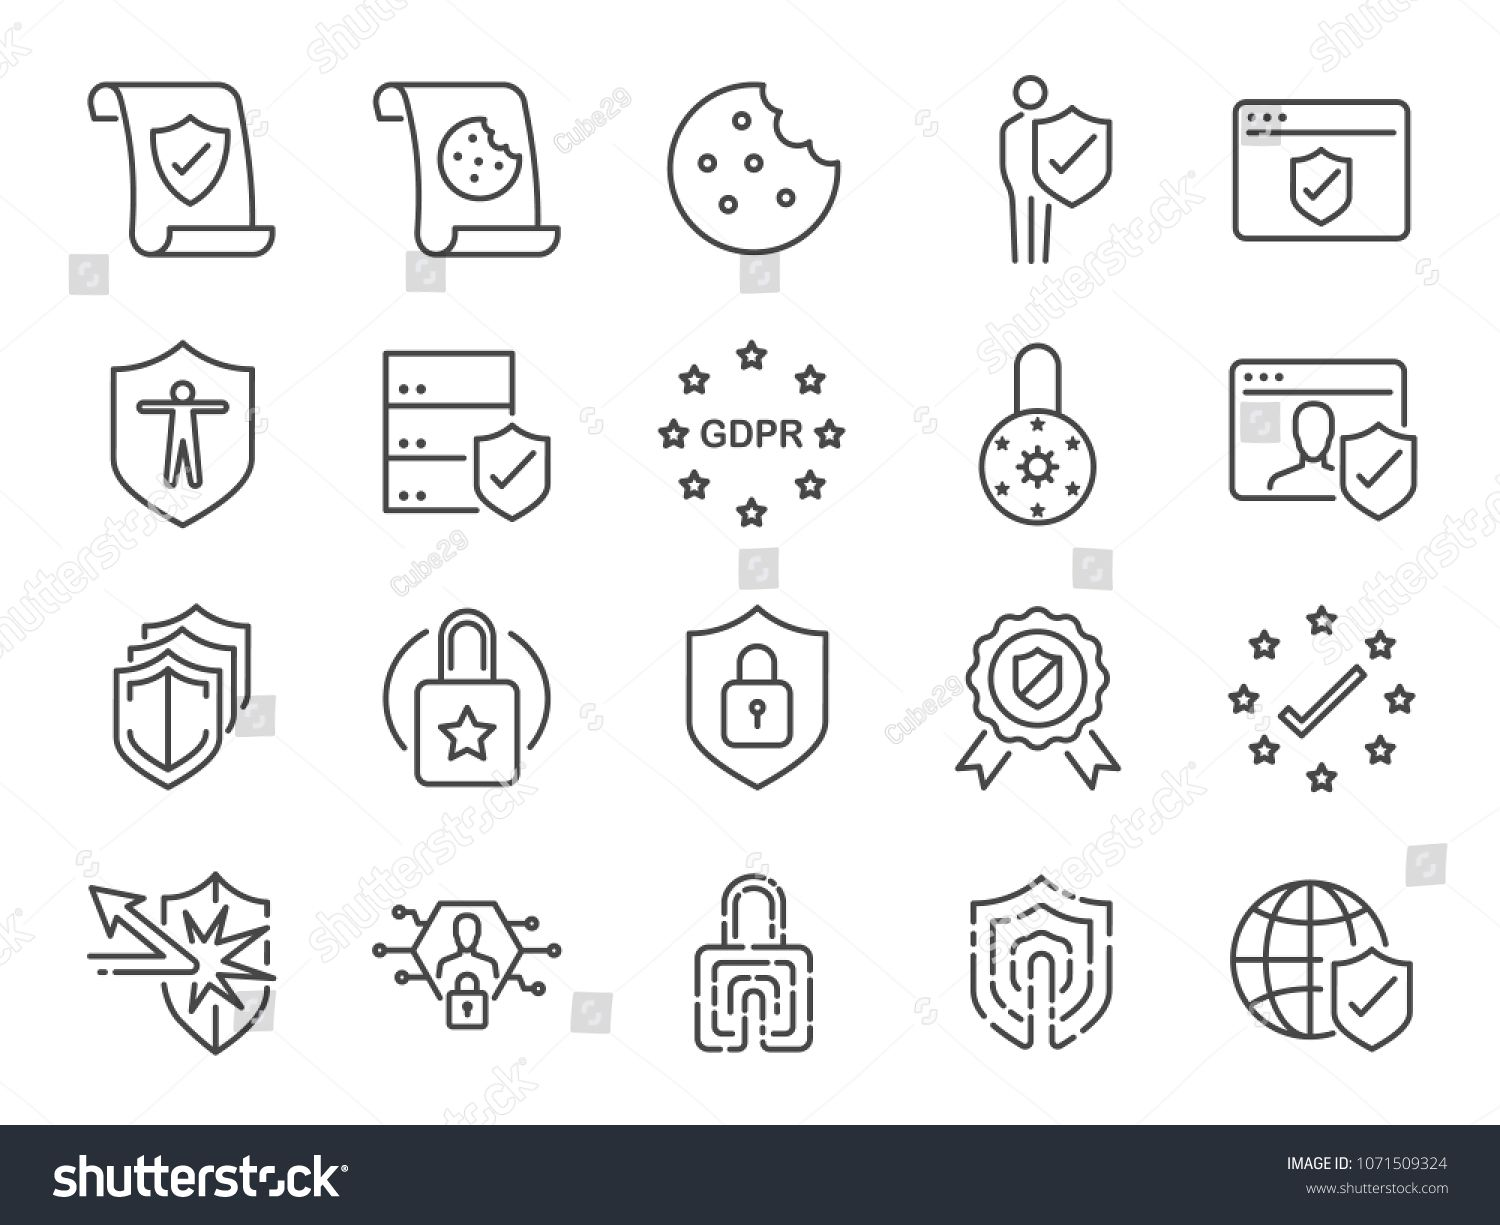 Gdpr Privacy Policy Icon Set Included The Icons As Security Information Gdpr Data Protection Shield Cookies Policy Compliant Pers In 2020 Icon Set Line Icon Icon